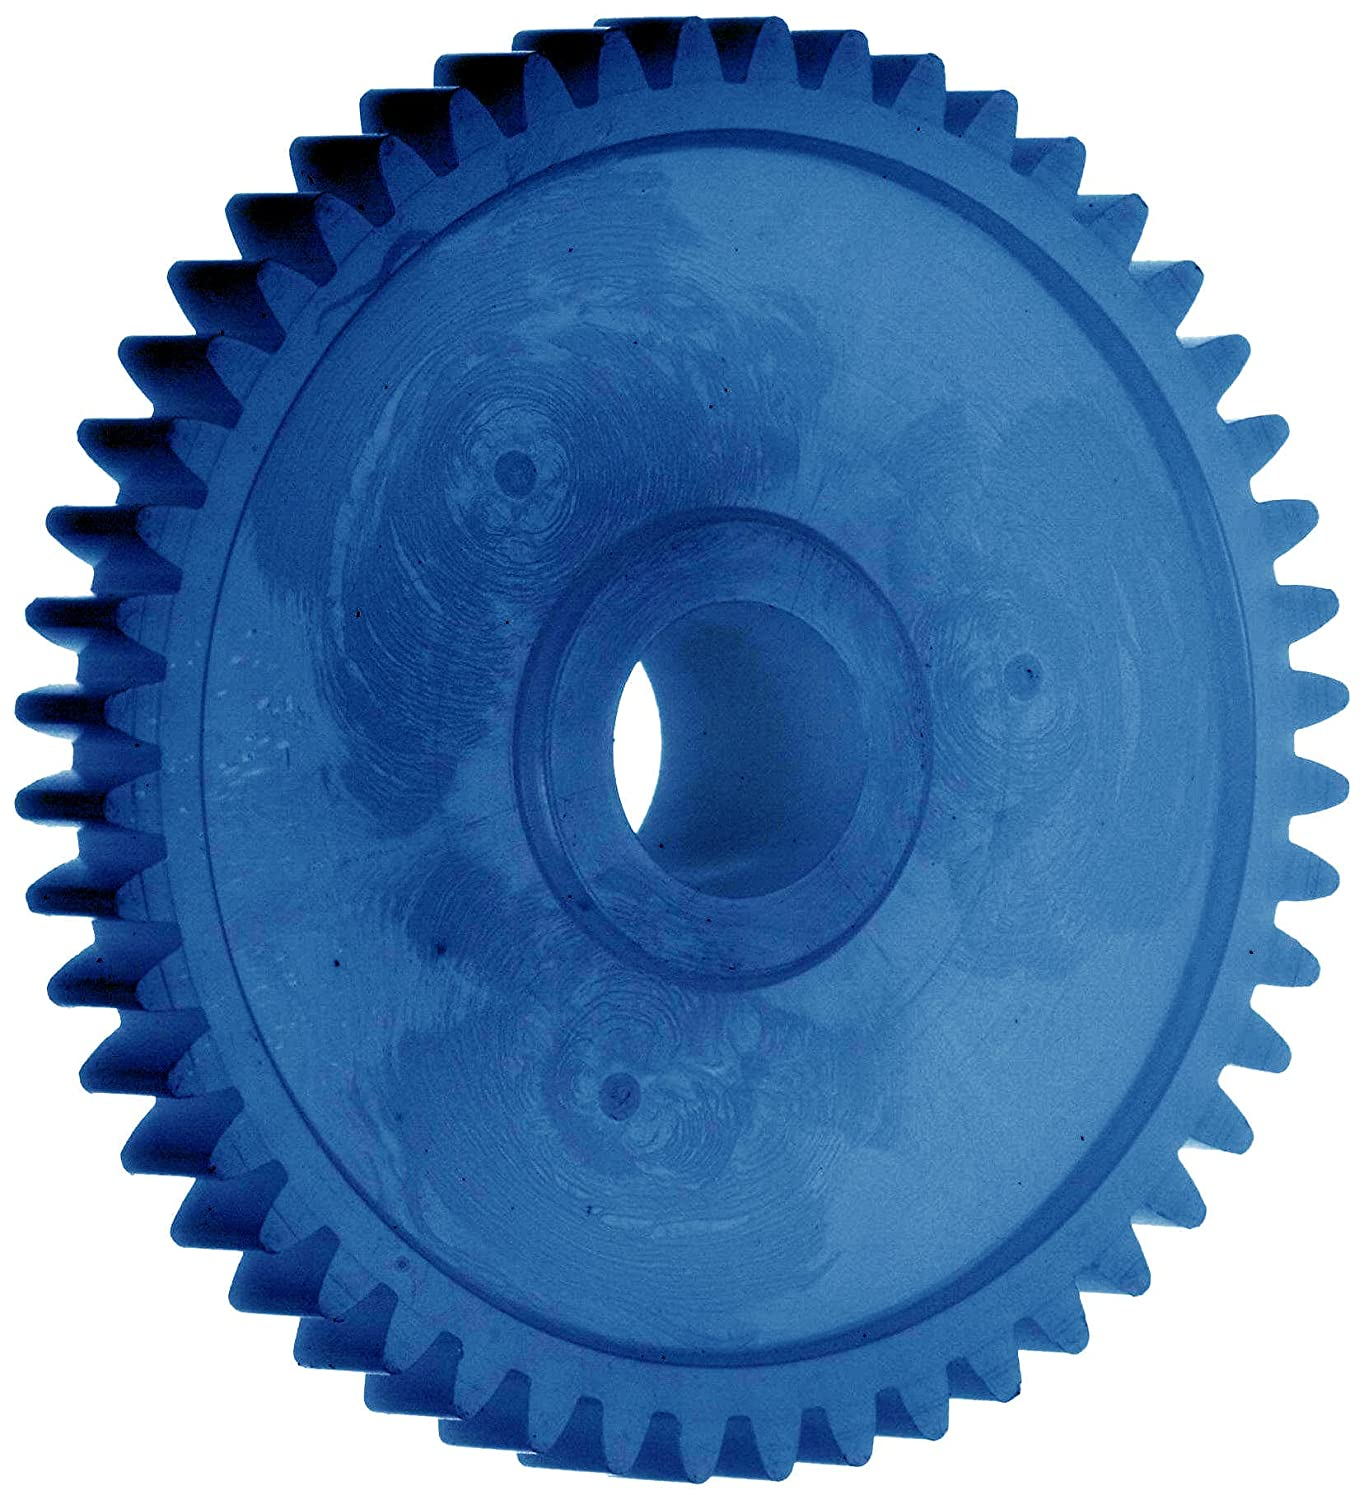 AM2B40 Ametric® Metric Injection Molded Acetal Resin Spur Gear with Hub, 2 Metric Module Tooth Profile, 40 Teeth, 20 Degree Pressure Angle, 84 mm Outside Diameter, 26 mm Hub Diameter, 12 +/-1mm Pilot Bore, 15 mm Tooth Face Width, (Mfg Code 1-025)